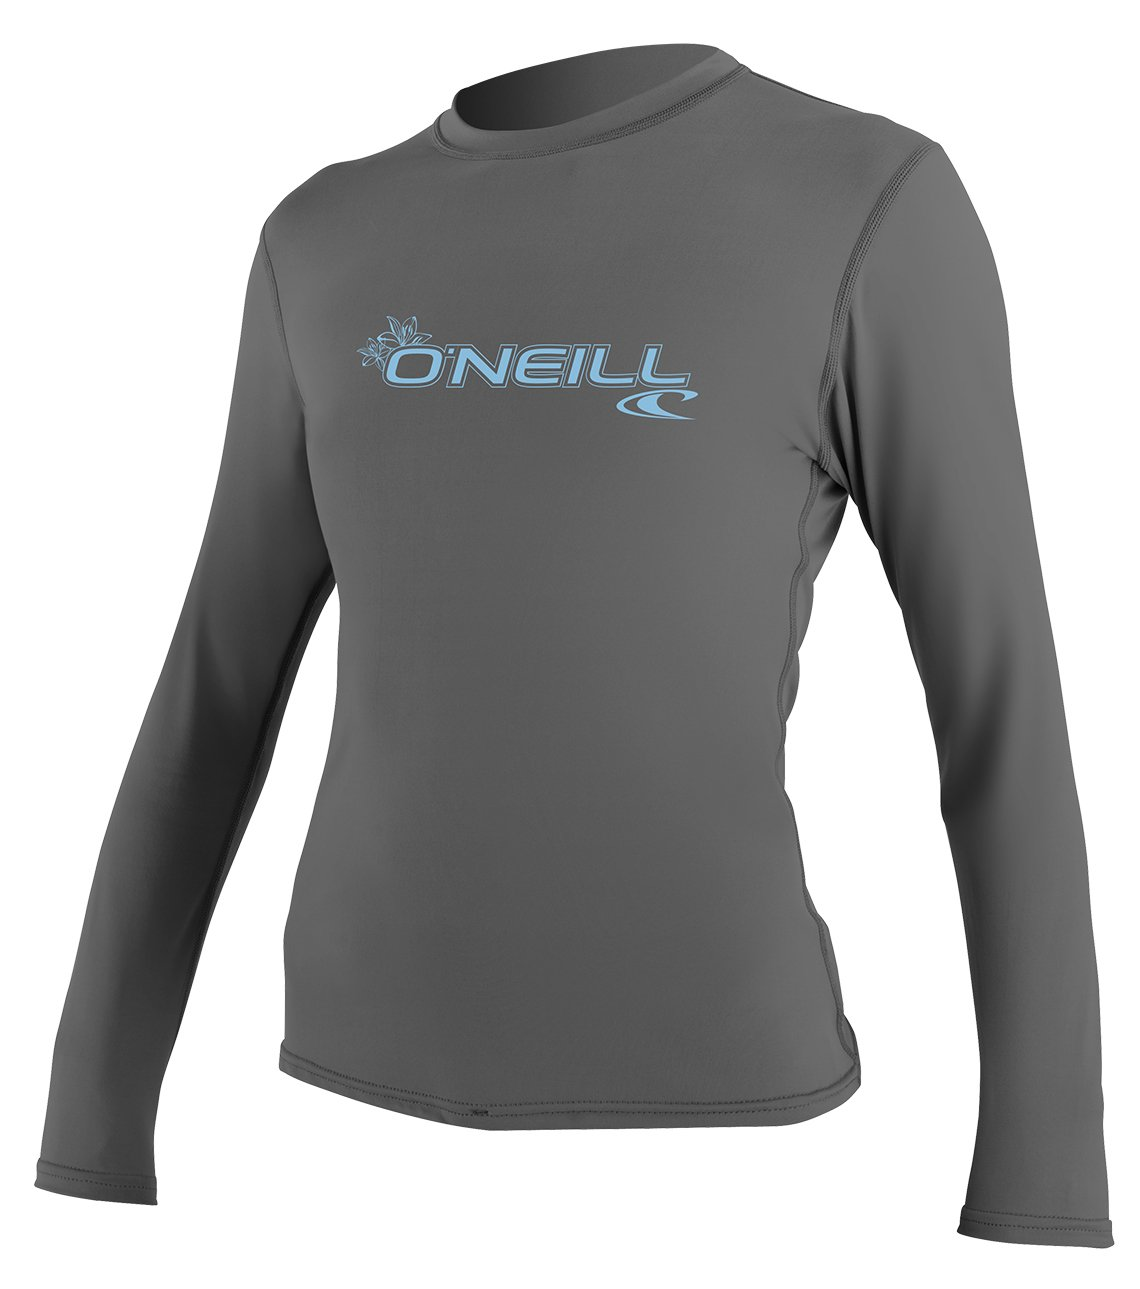 O'Neill Women's Basic Skins Upf 50+ Long Sleeve Sun Shirt, Graphite, Large by O'Neill Wetsuits